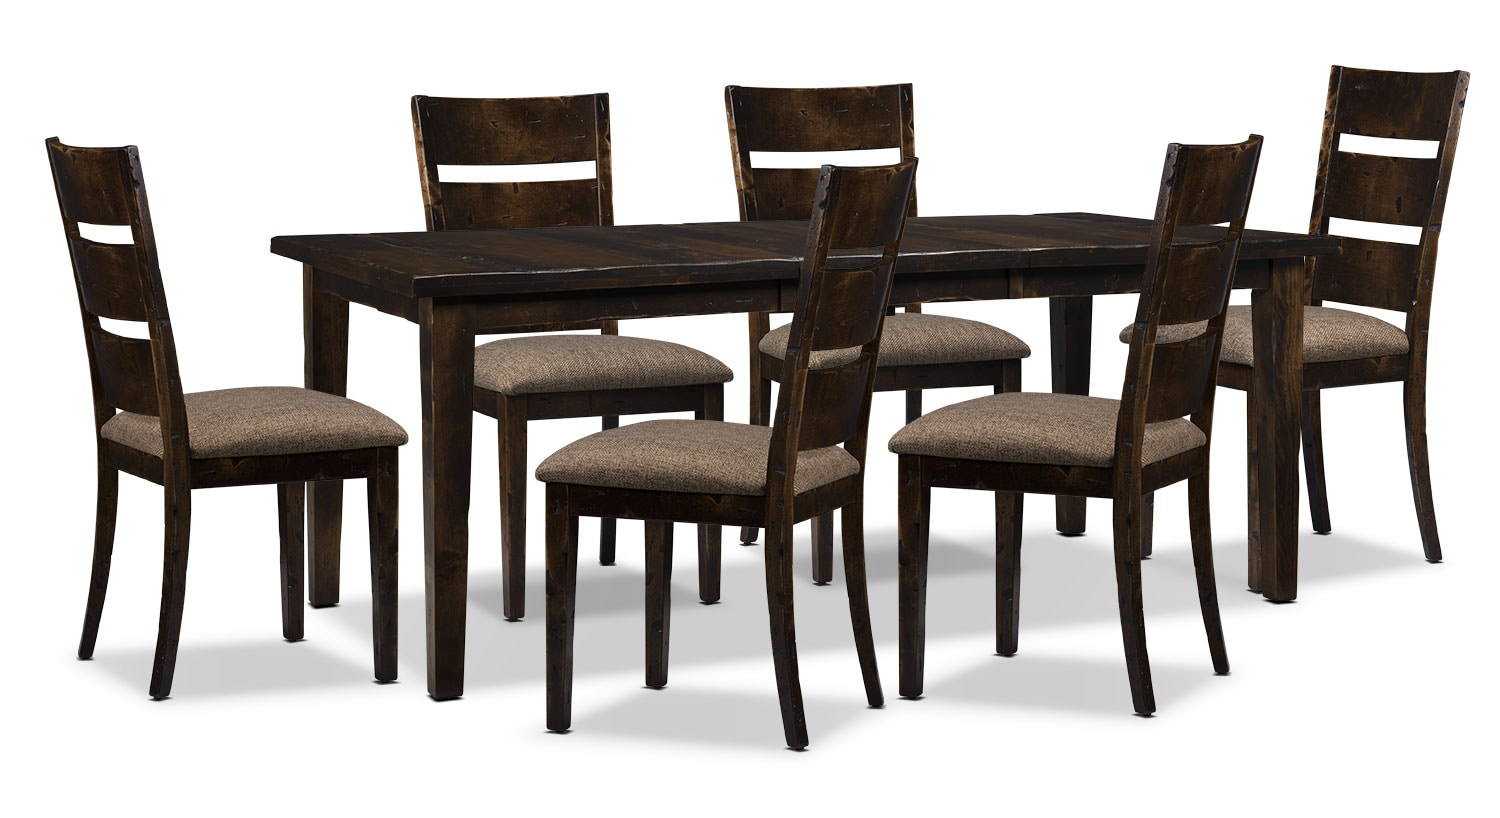 Bordeaux 7-Piece Dining Package with Single-Leaf Table – Brown